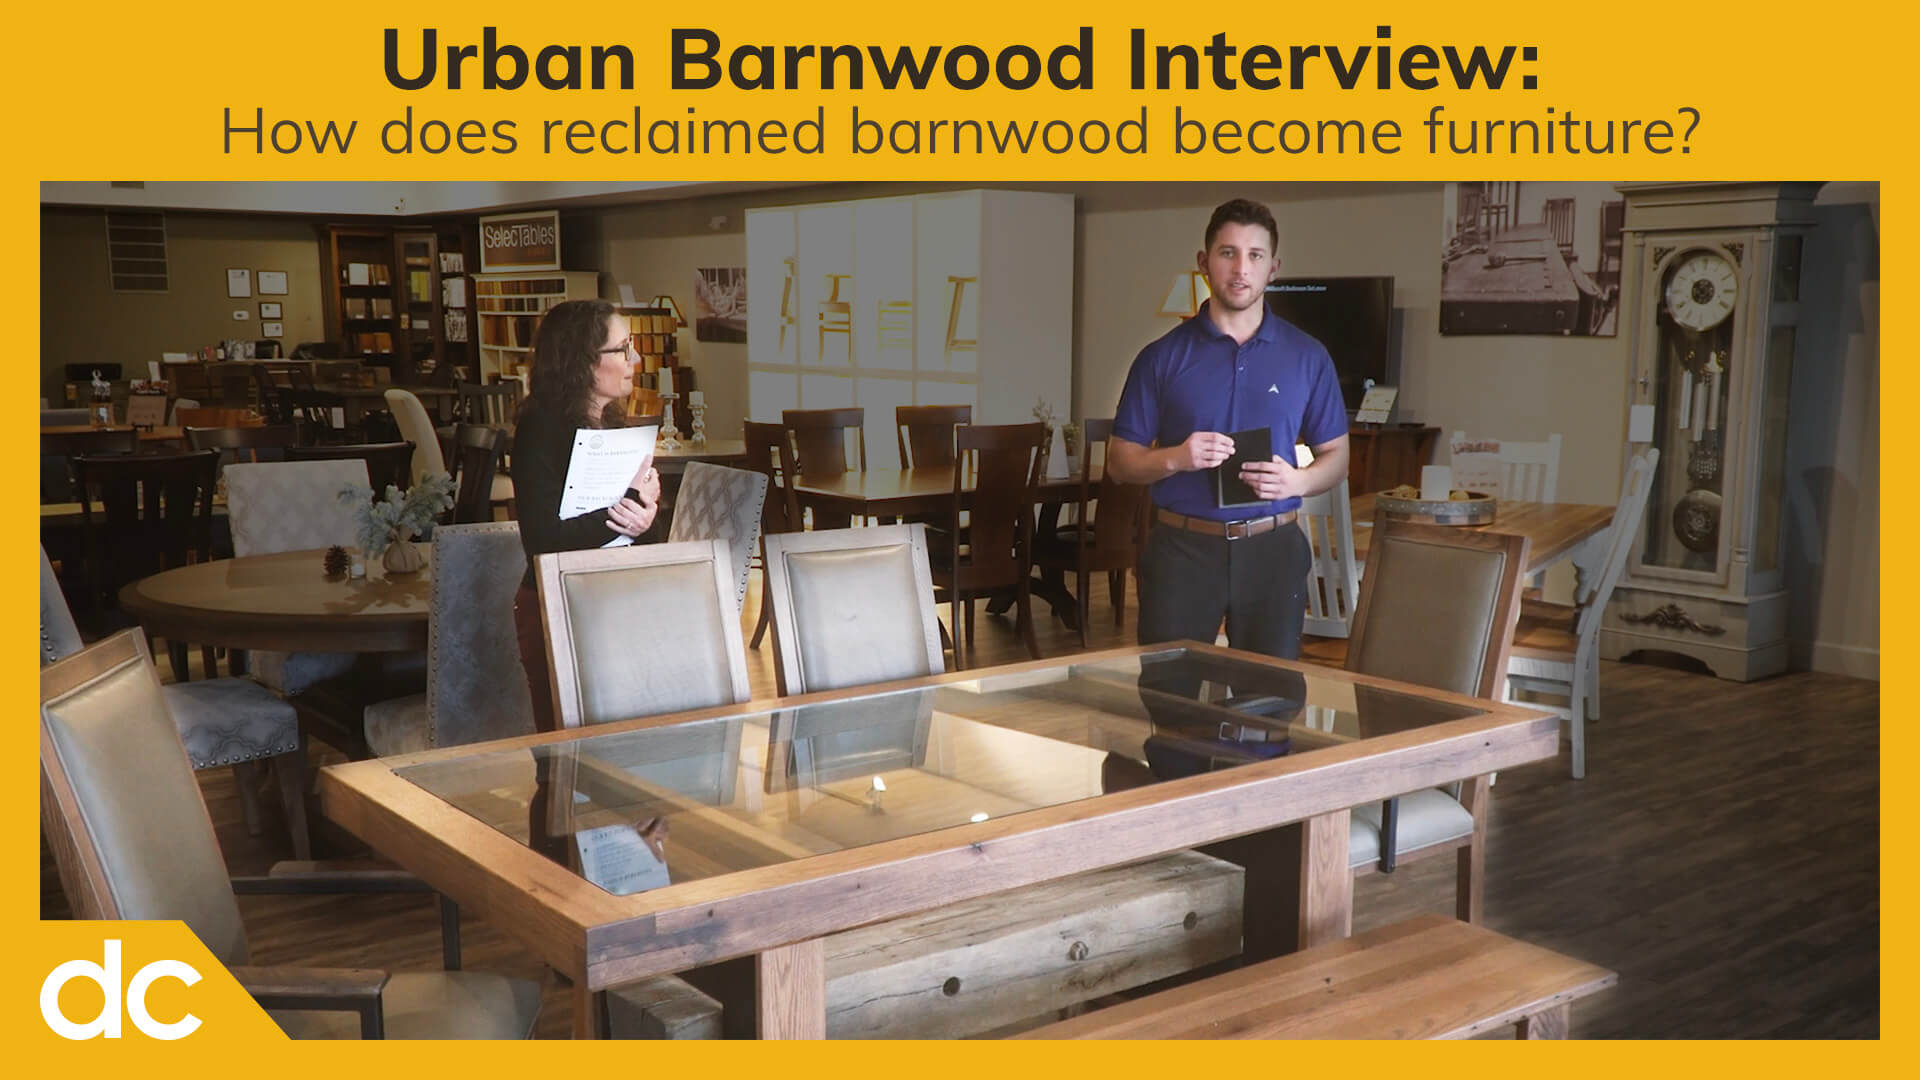 Urban Barnwood Interview Video Title